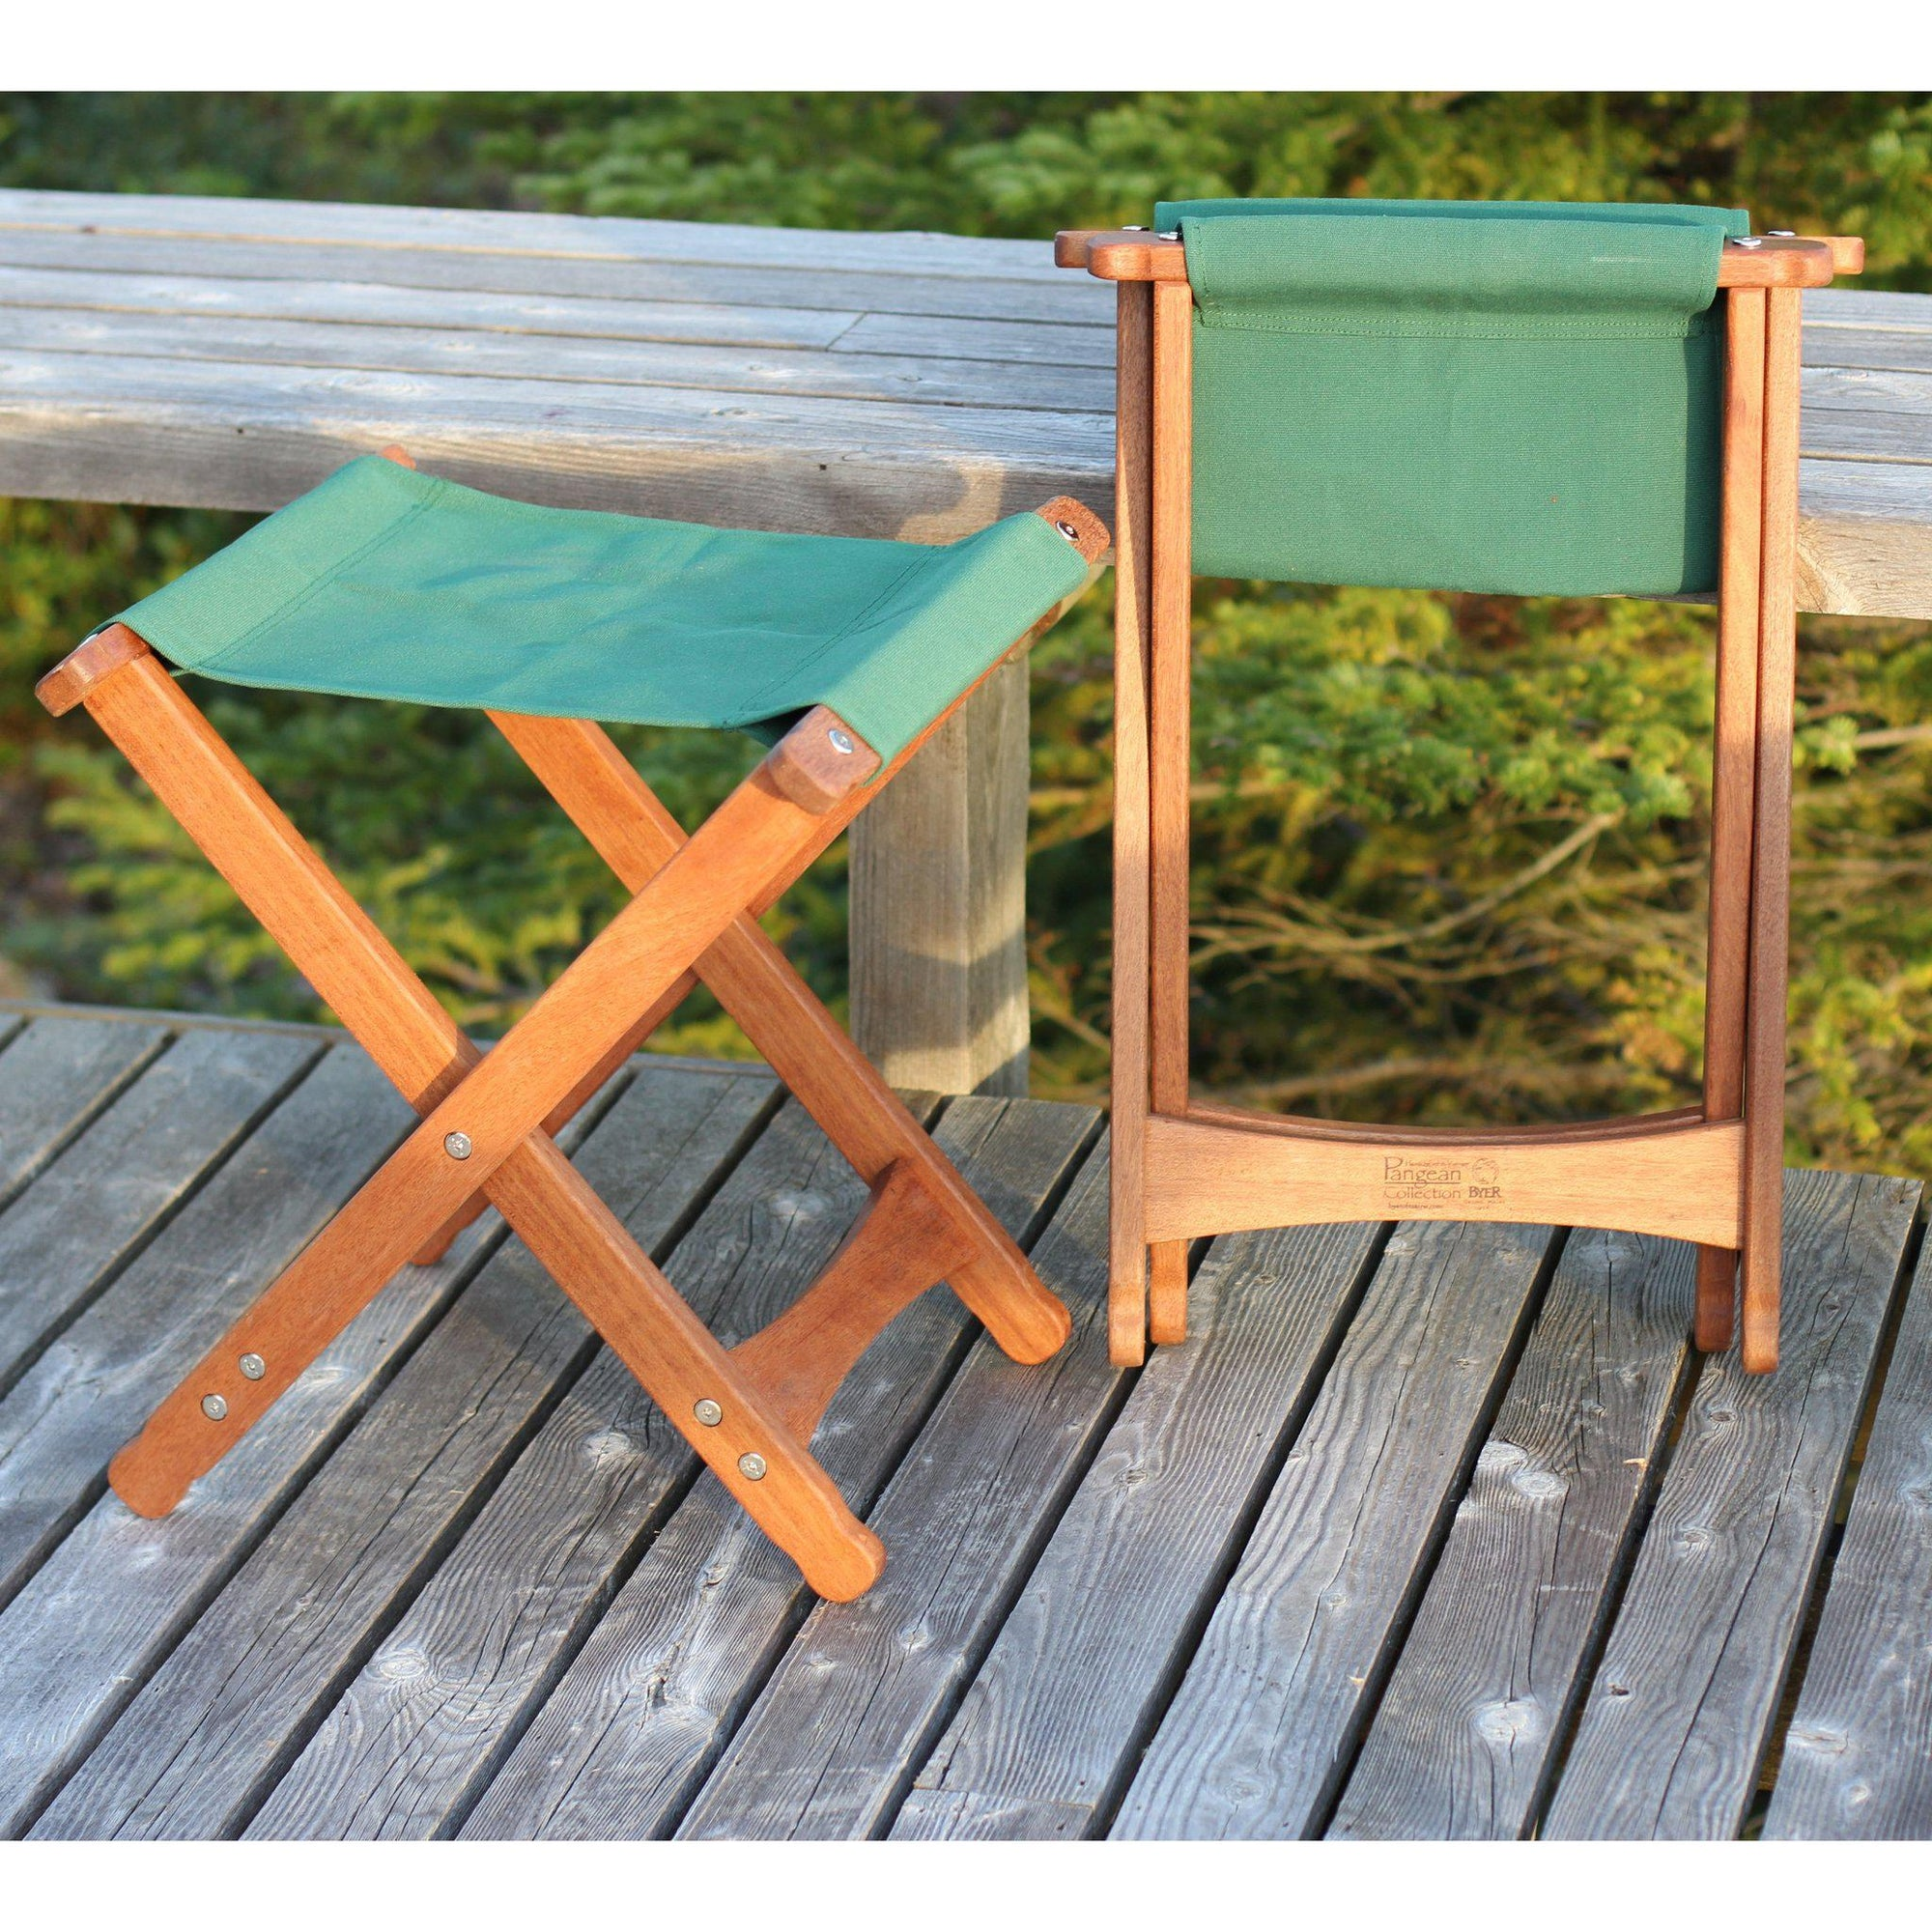 Pangean Folding Stool, from Byer of Maine